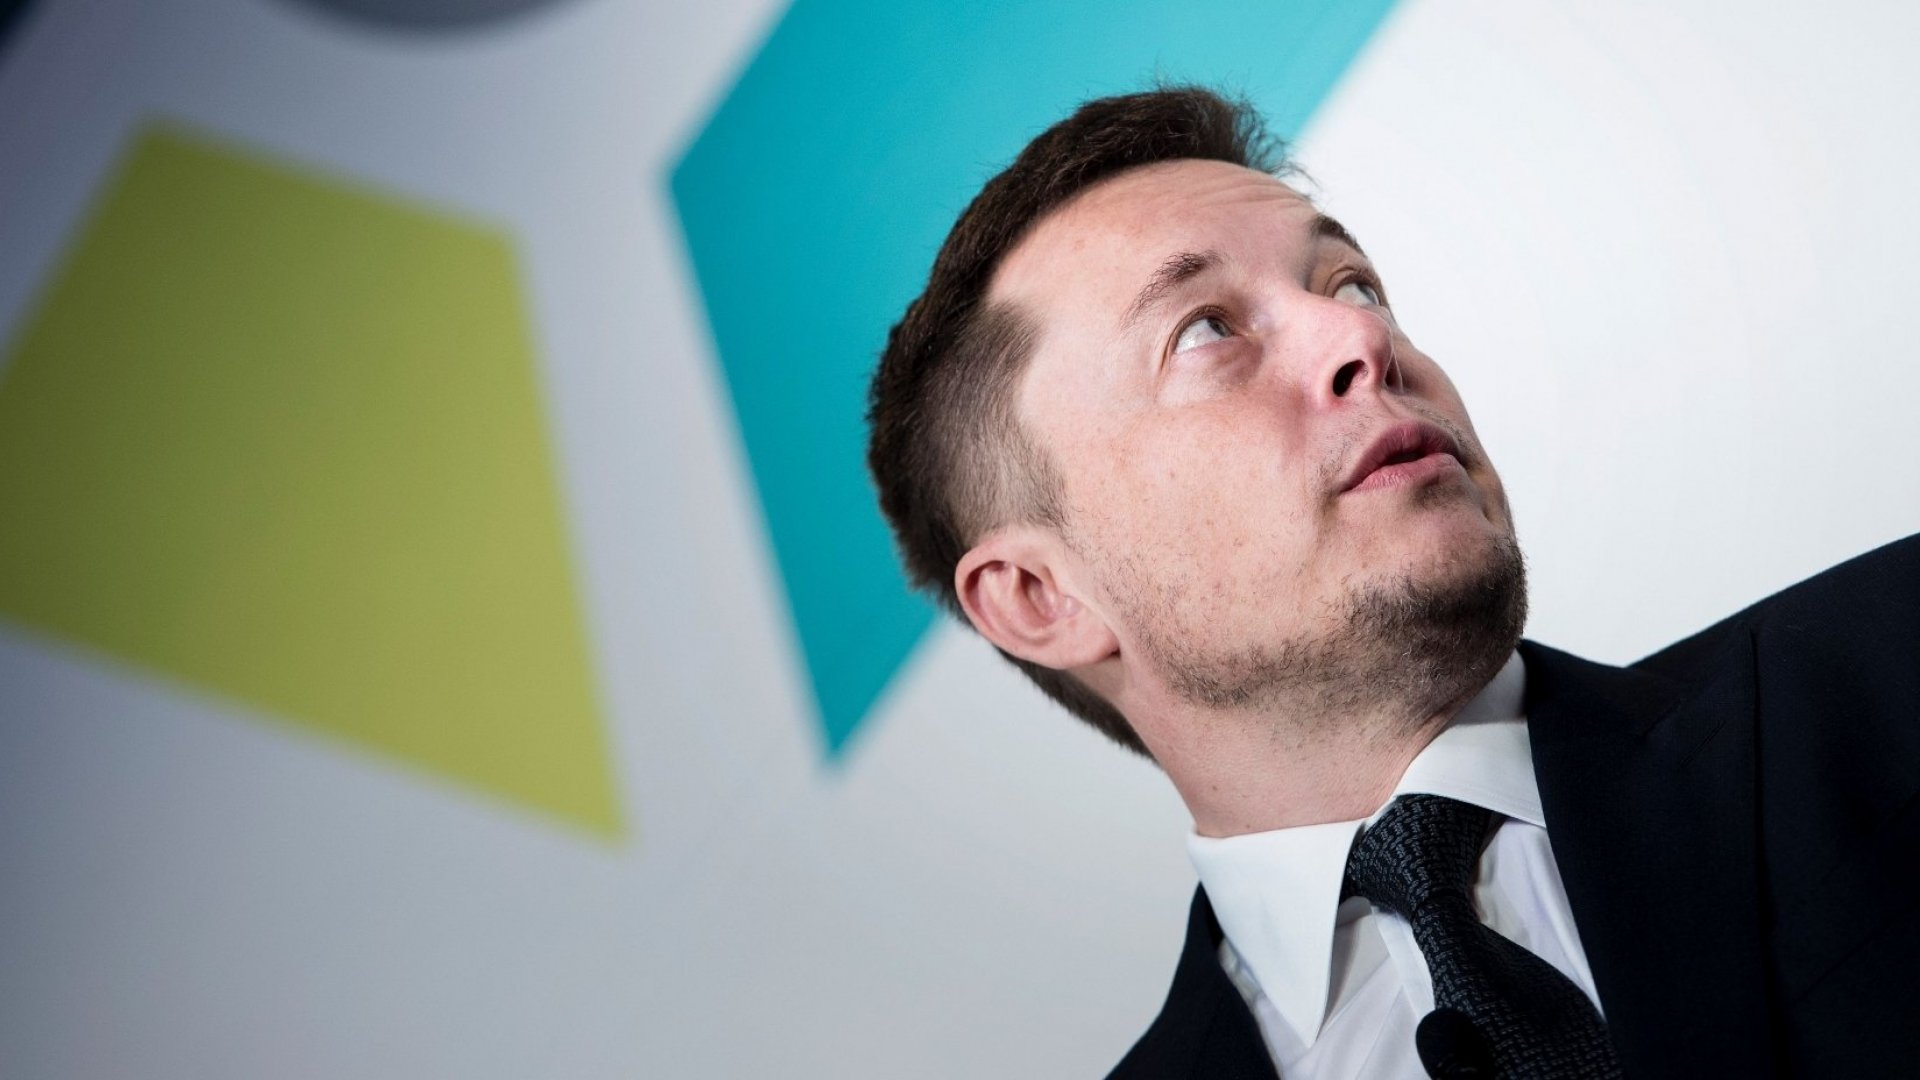 Elon Musk, CEO of SpaceX and Tesla.